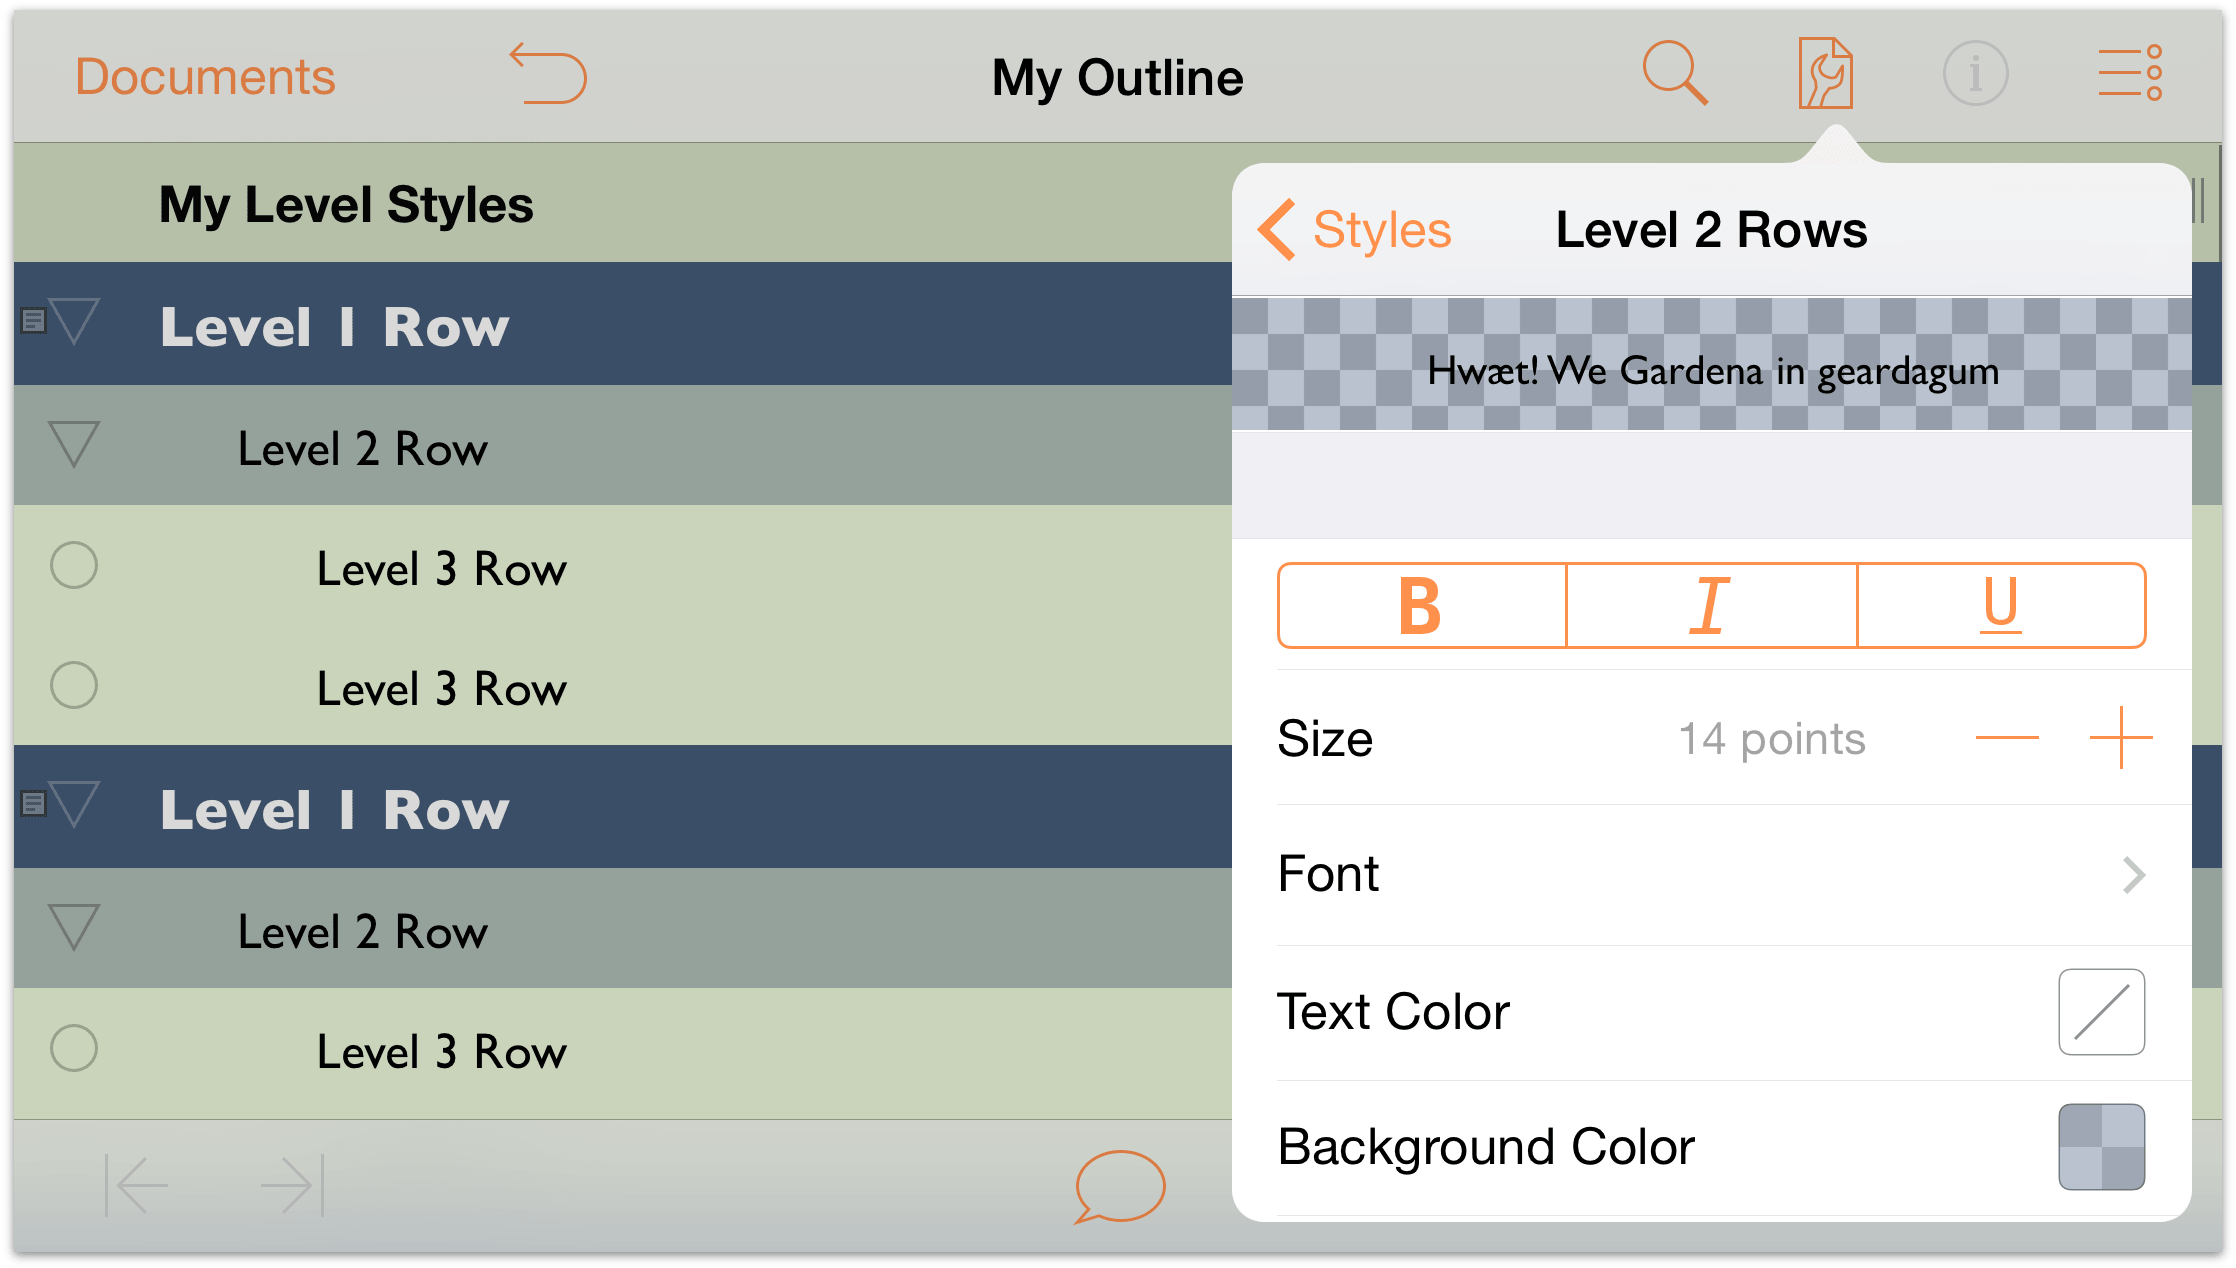 omnioutliner 2 7 for ios user manual working with templates and